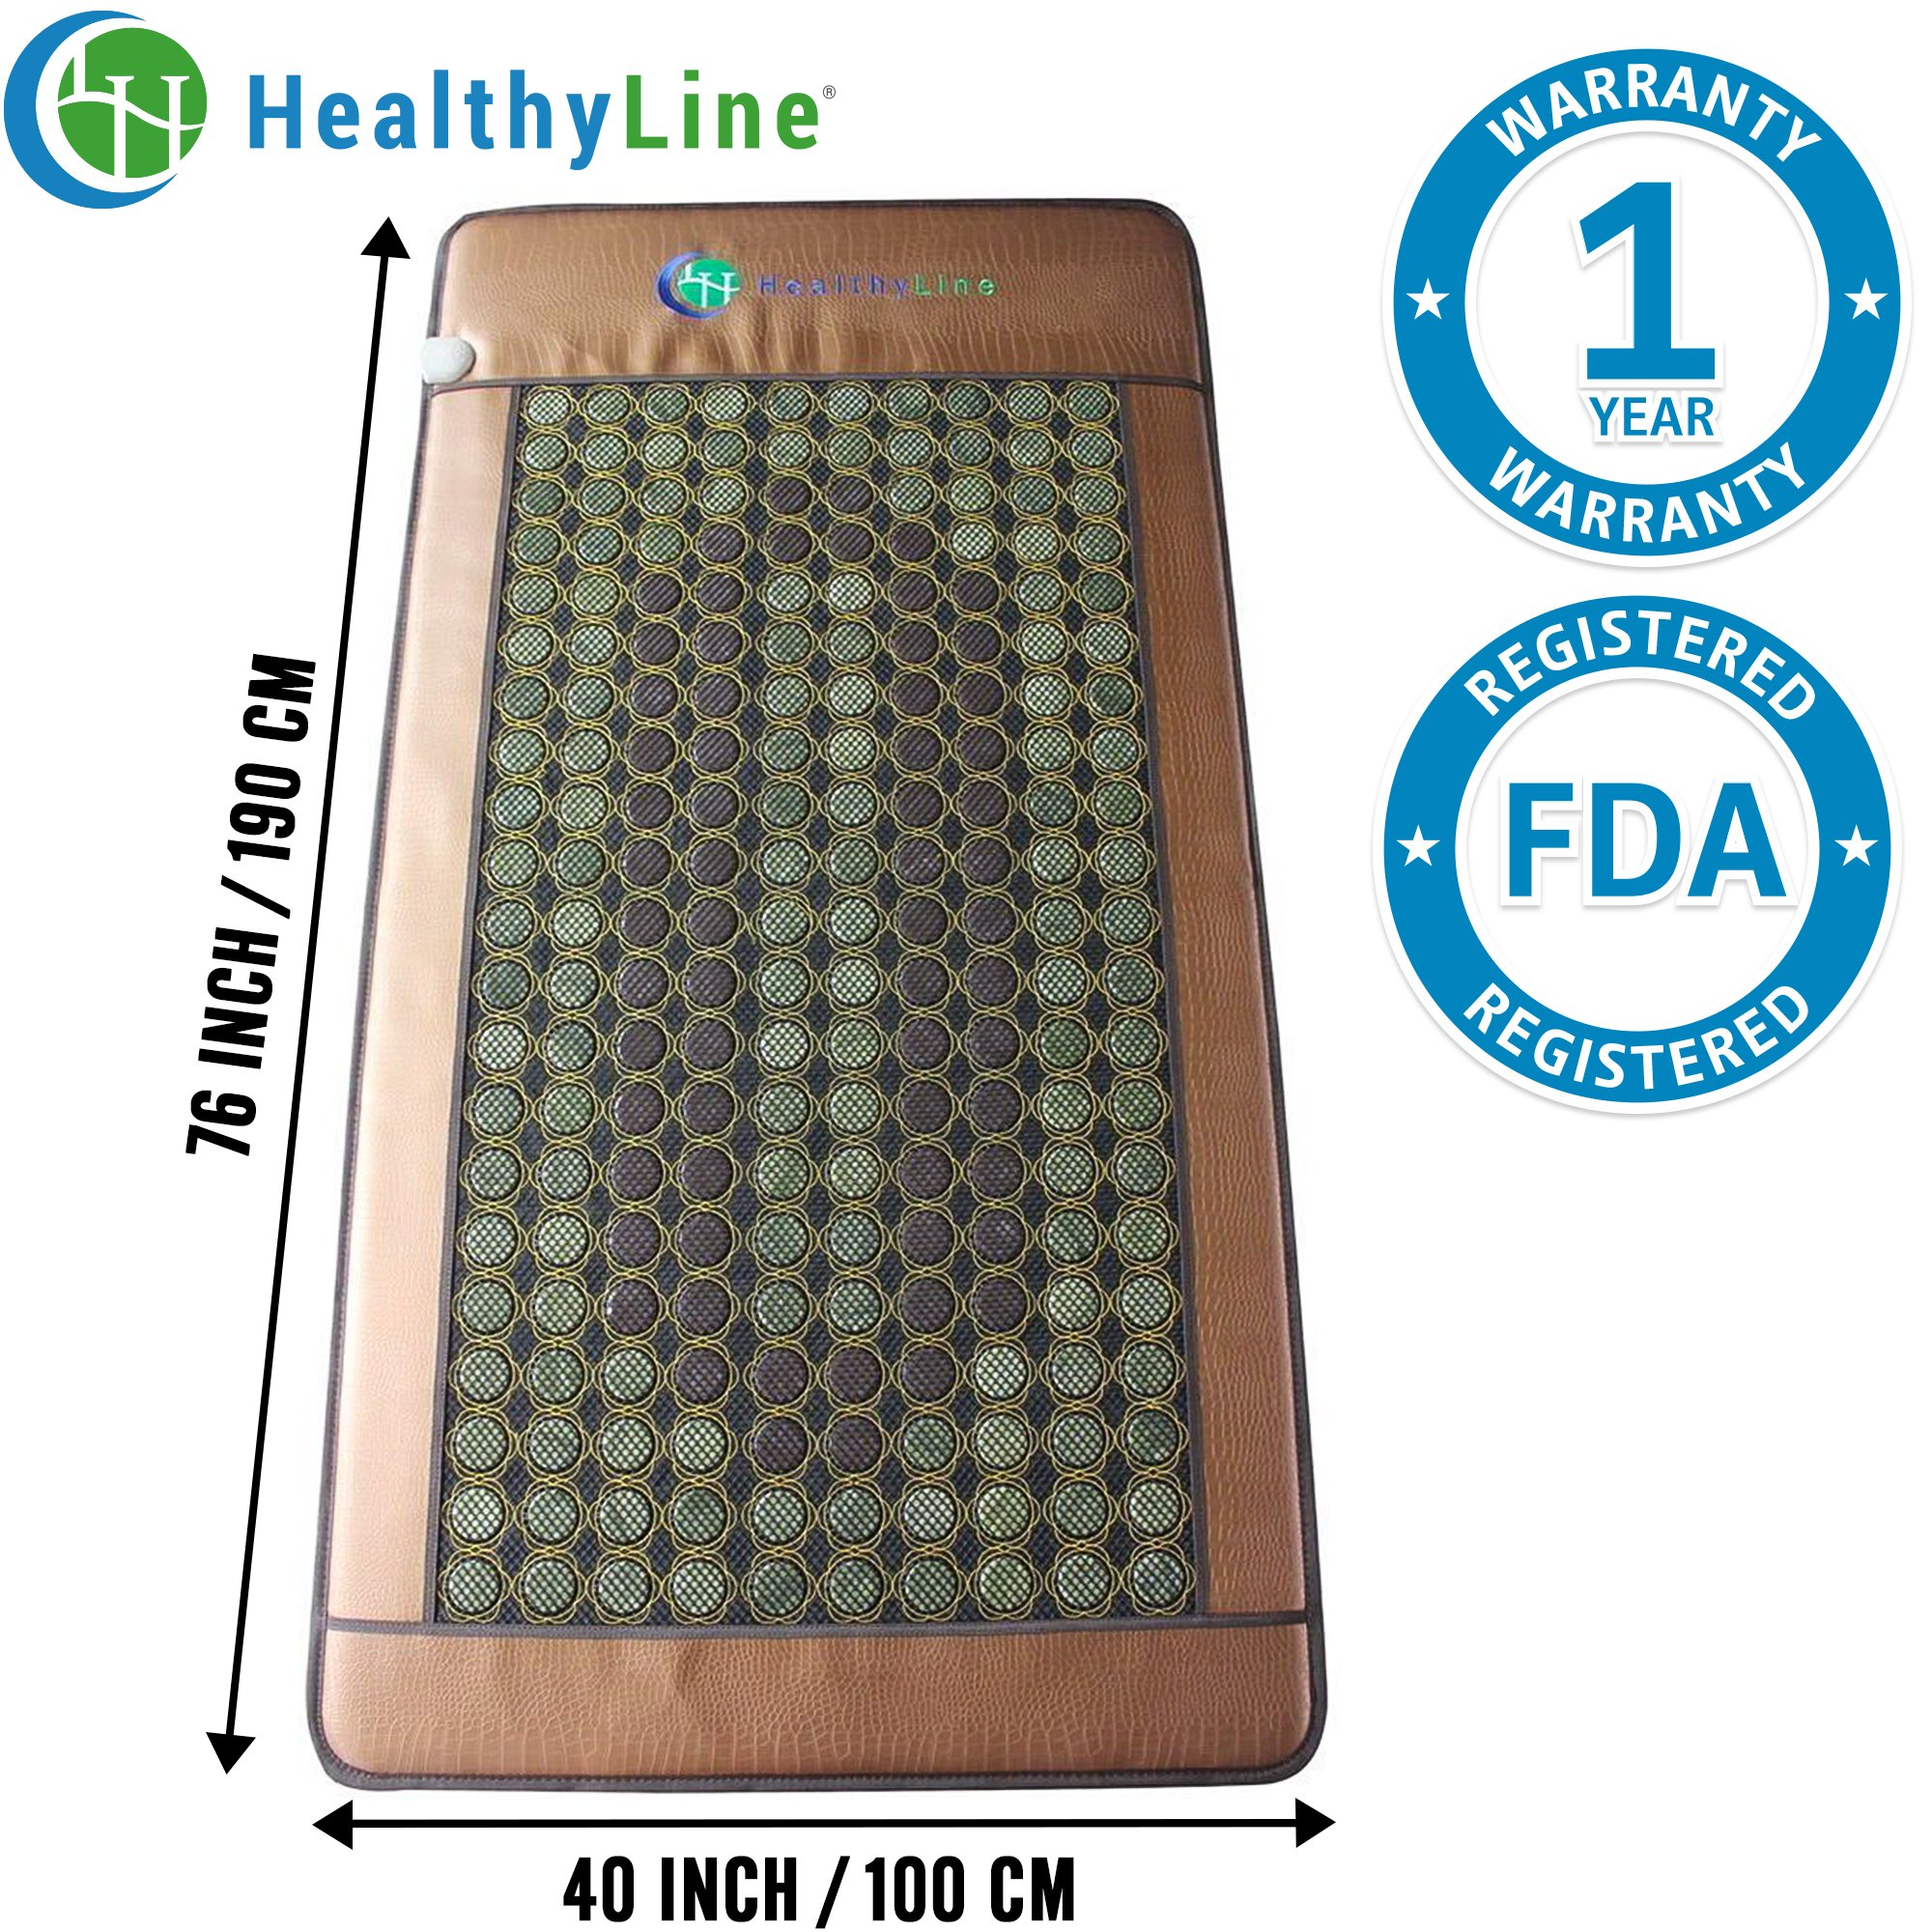 HealthyLine Heating Mat|Natural Jade & Tourmaline Far Infrared Massage Table Pad 75'' x 40'' |​​​​​ ​Heated Negative Ions (X-Large & Firm) | Relieve Pain & Insomnia |Free Foil Blanket| FDA Registered by HealthyLine